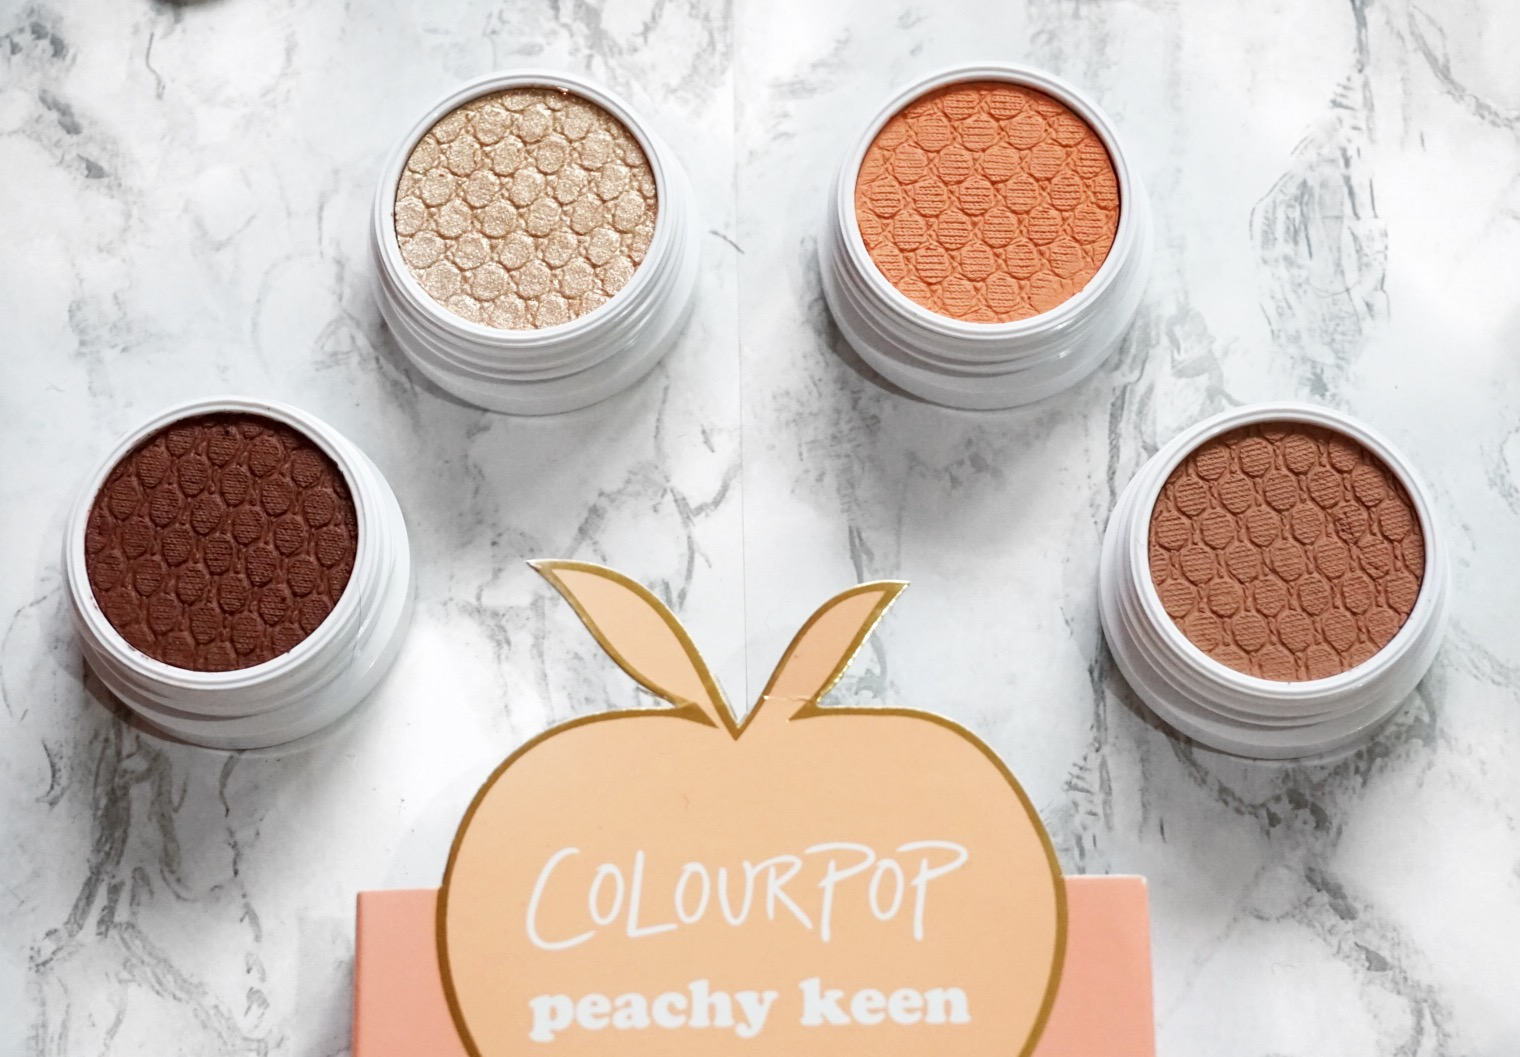 Colourpop Peachy Keen Eyeshadow Foursome